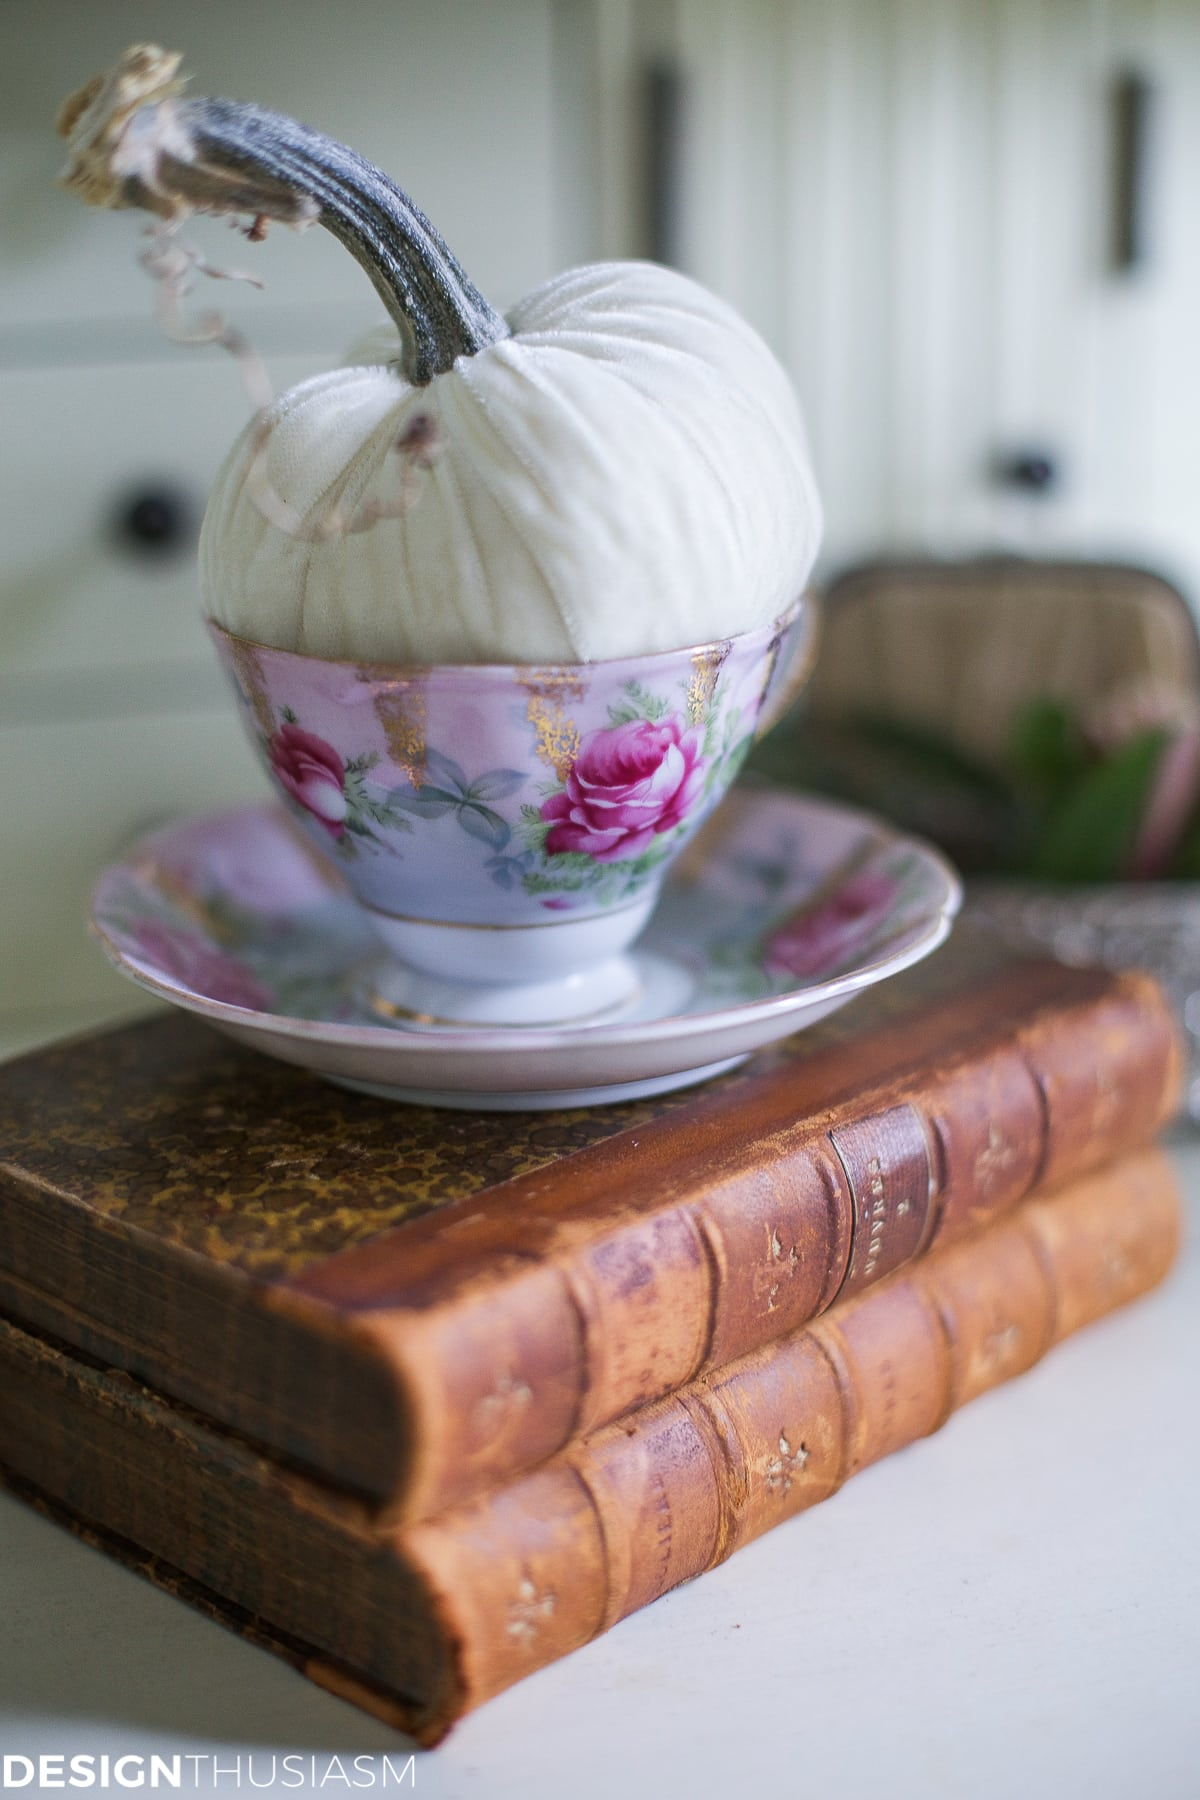 Introducing Fall Decor to Your Home with Neutral Pumpkin Styling - designthusiasm.com